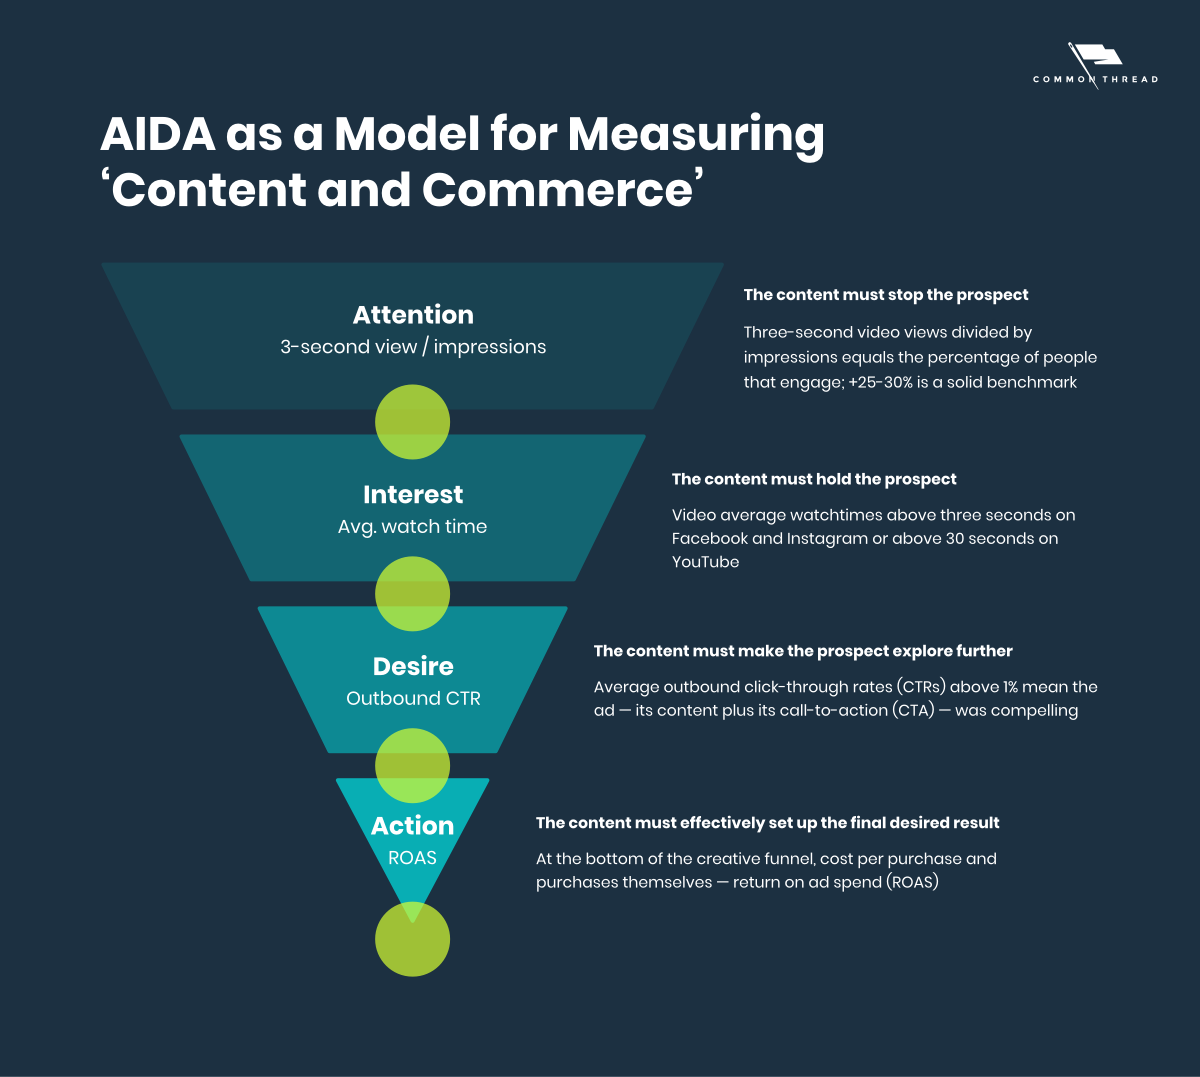 AIDA as a Model for Measuring 'Content and Commerce': Attention is measured by 3-second view/impressions. Interest is measured by average watch time. Desire is measured by outbound CTR. Action is measured by ROAS.